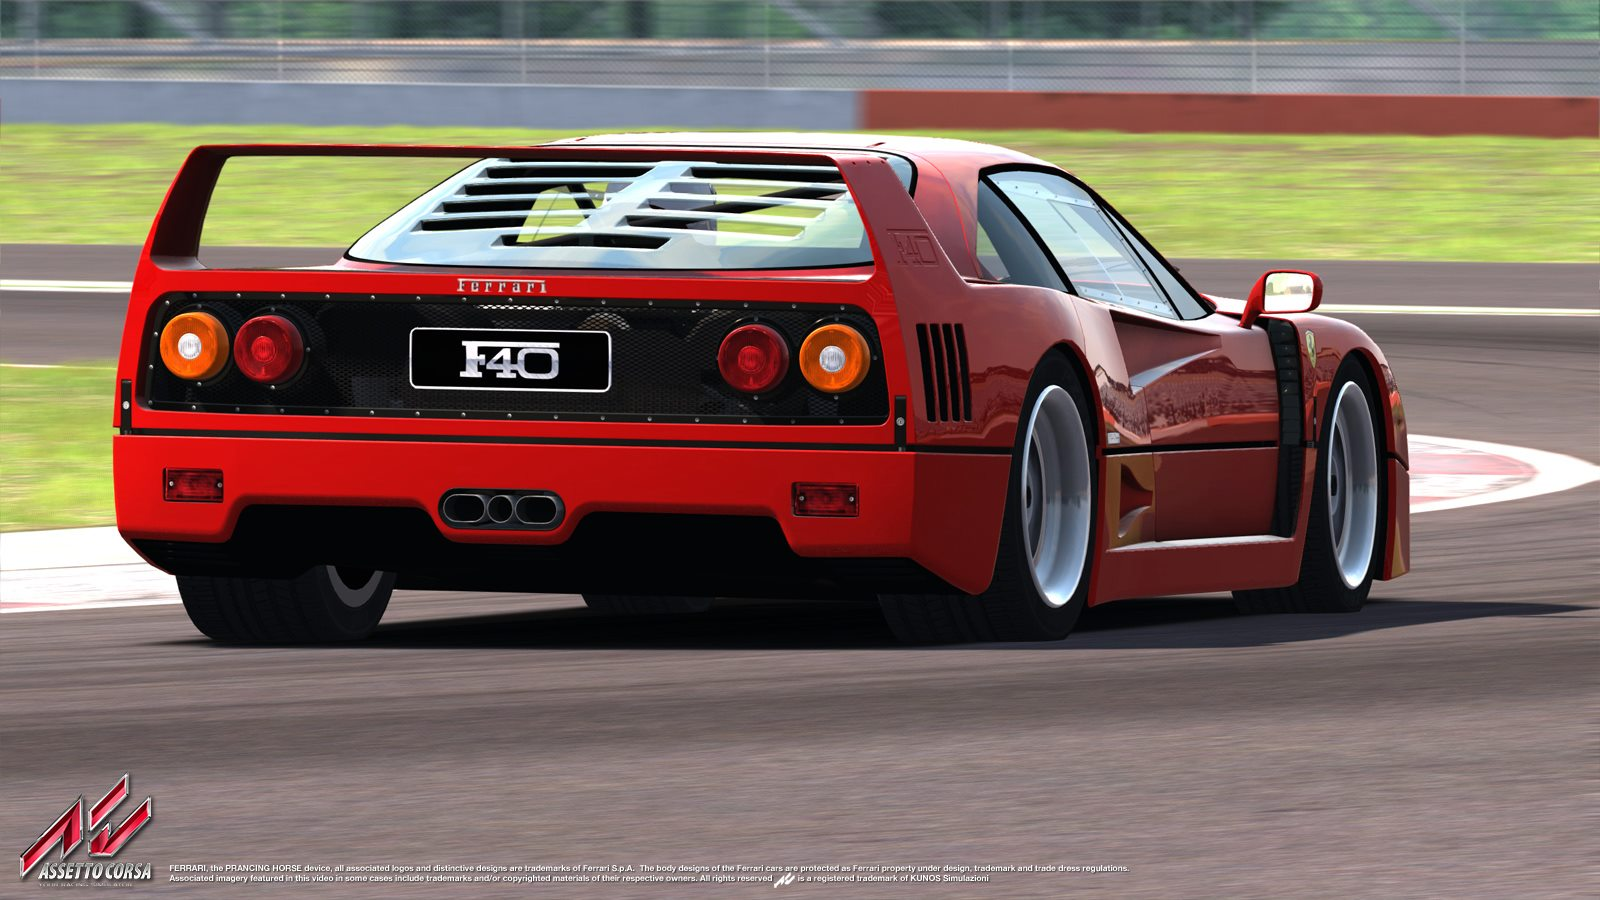 Assetto_Corsa_Ferrari_F40_Preview